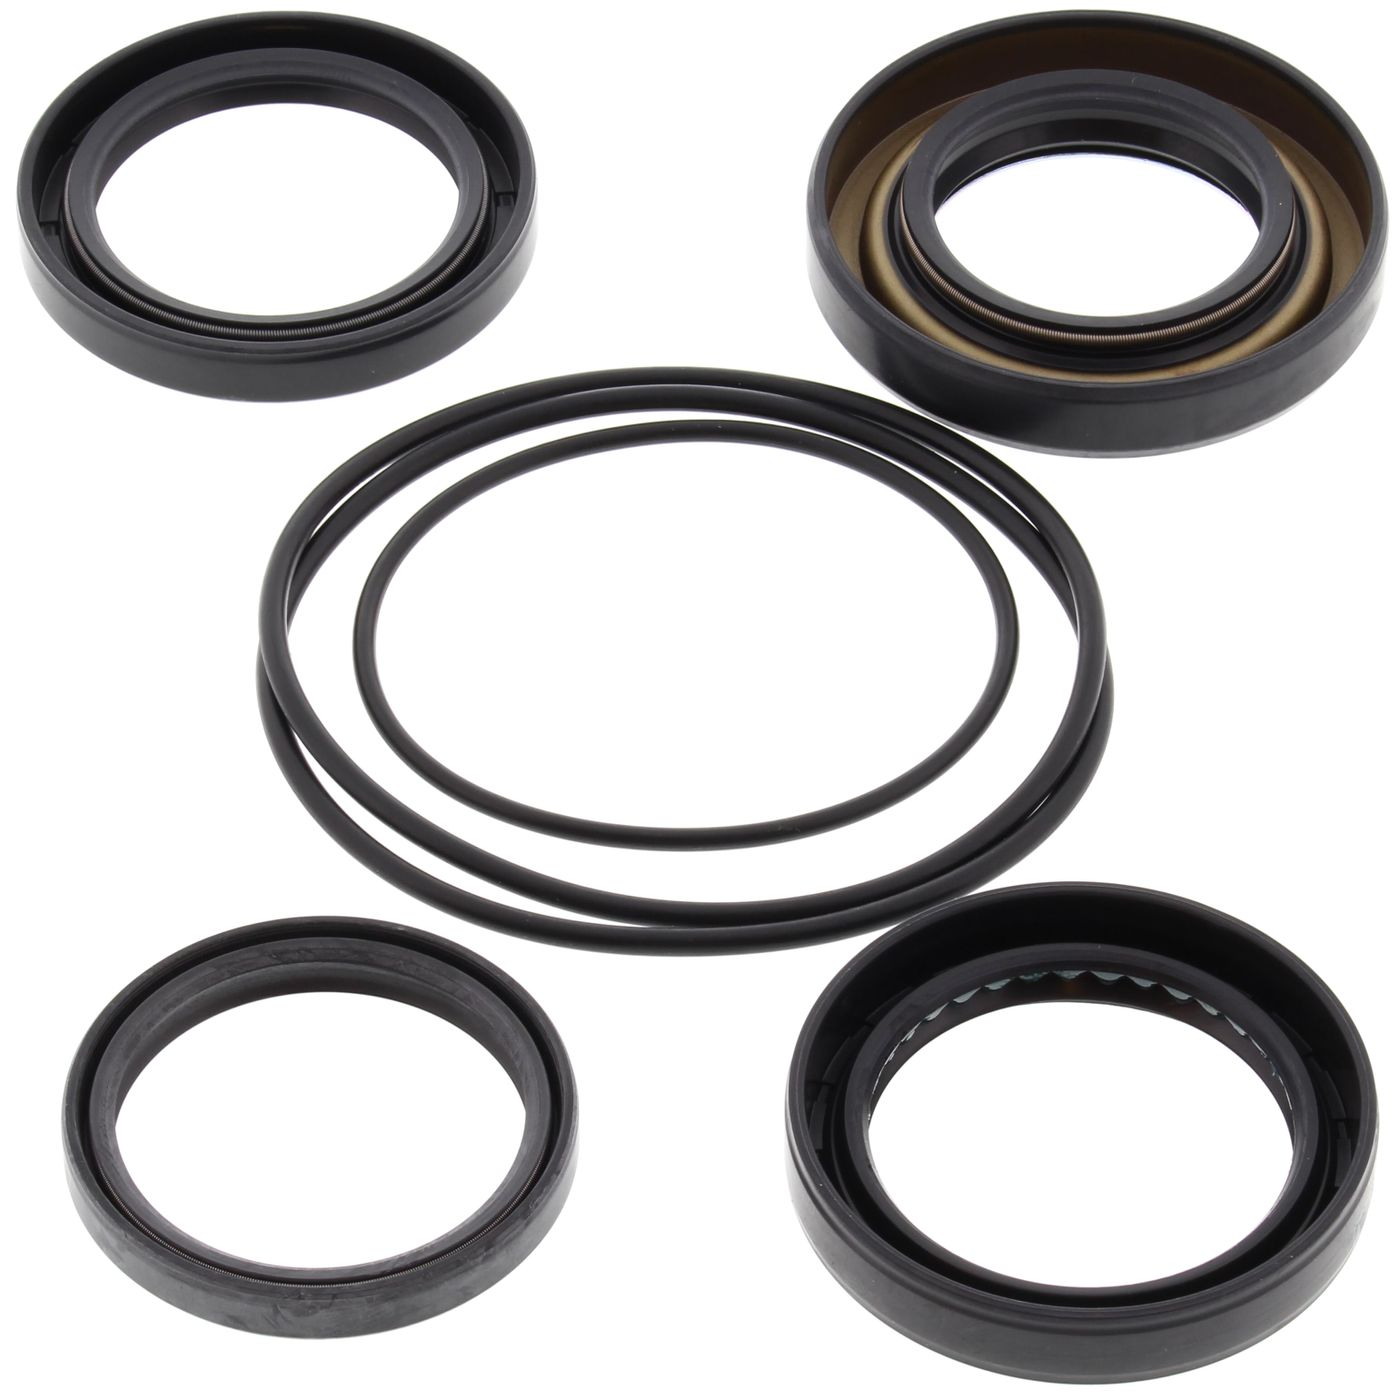 Wrp Diff Seal Kits - WRP252010-5 image